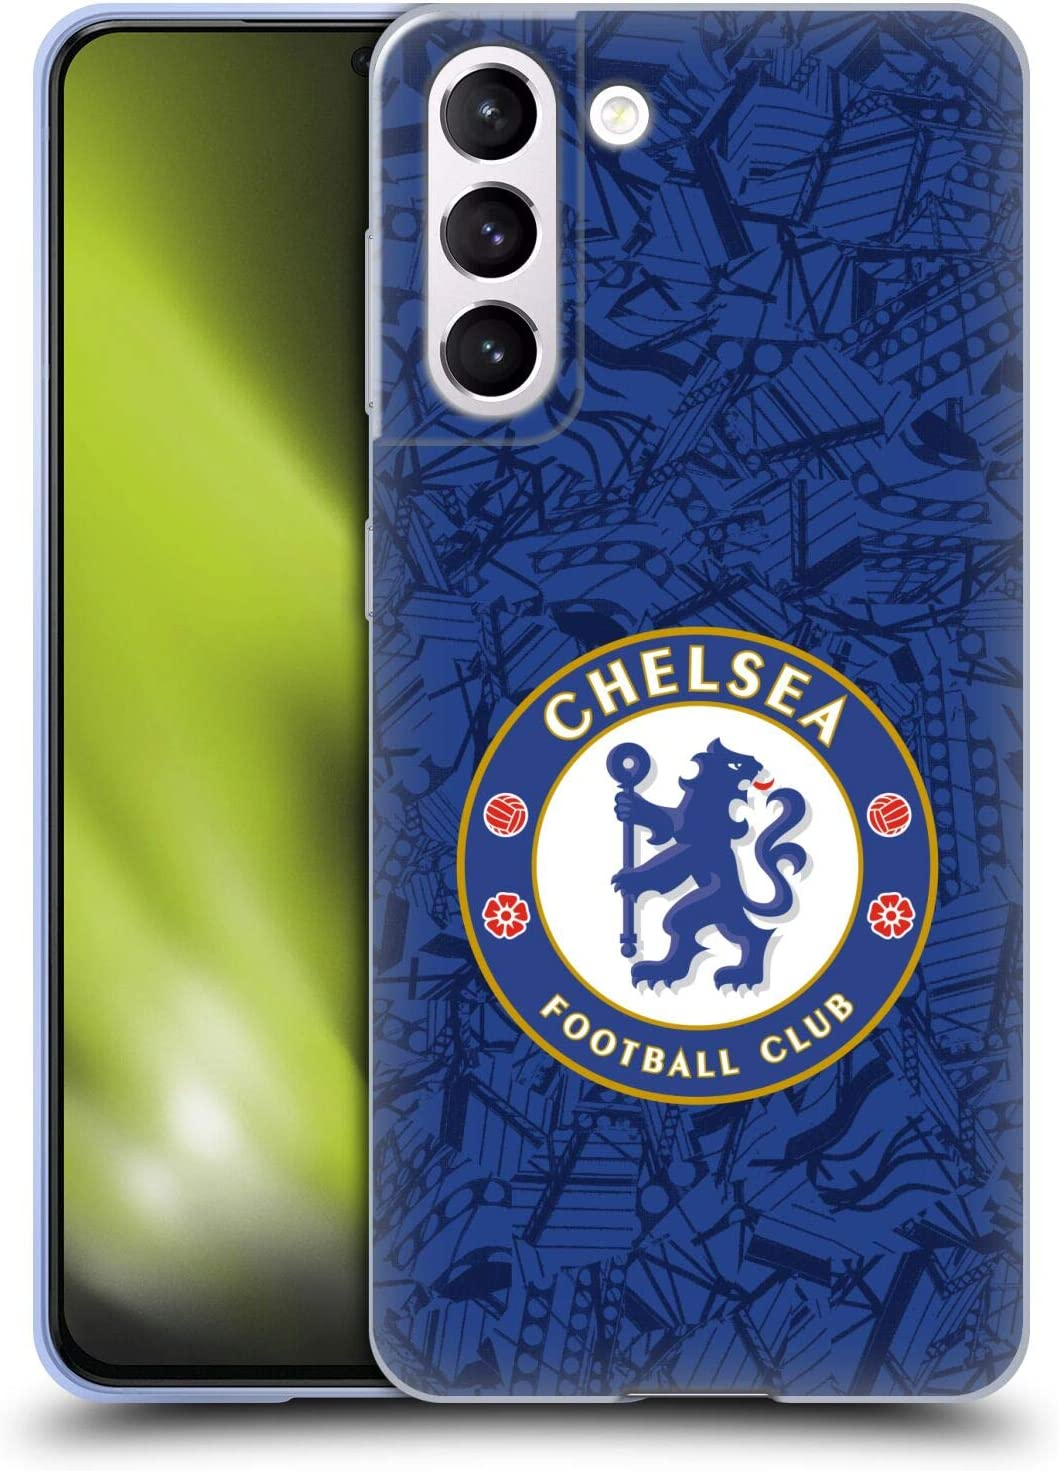 Head Case Designs Officially Licensed Chelsea Football Club Home 2019/20 Kit Soft Gel Case Compatible with Samsung Galaxy S21 5G